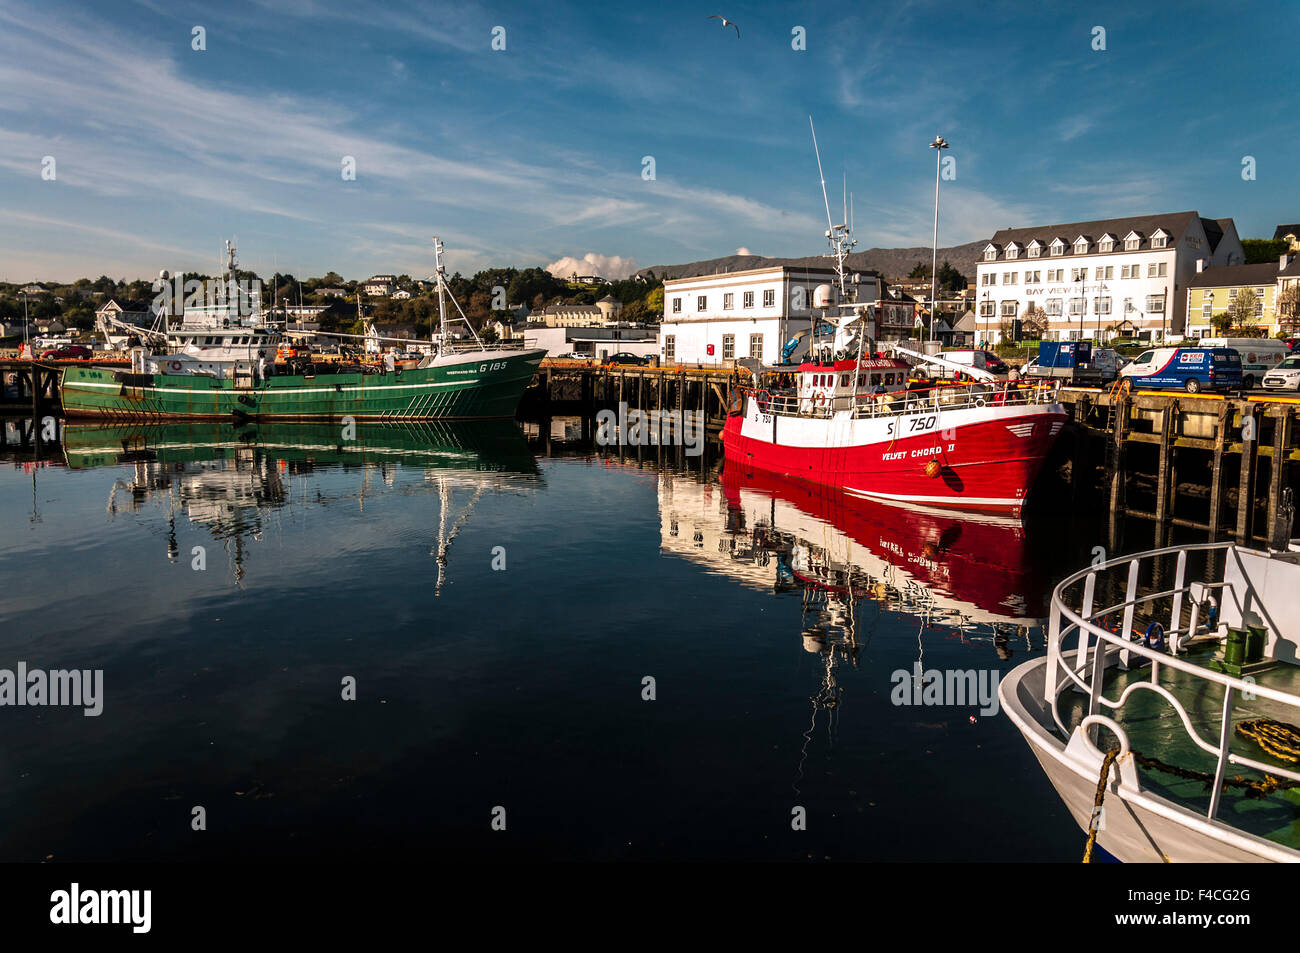 Killybegs, County Donegal, Ireland. October 16th 2015. Still and sunny day in  Ireland's premier fishing port - Stock Image